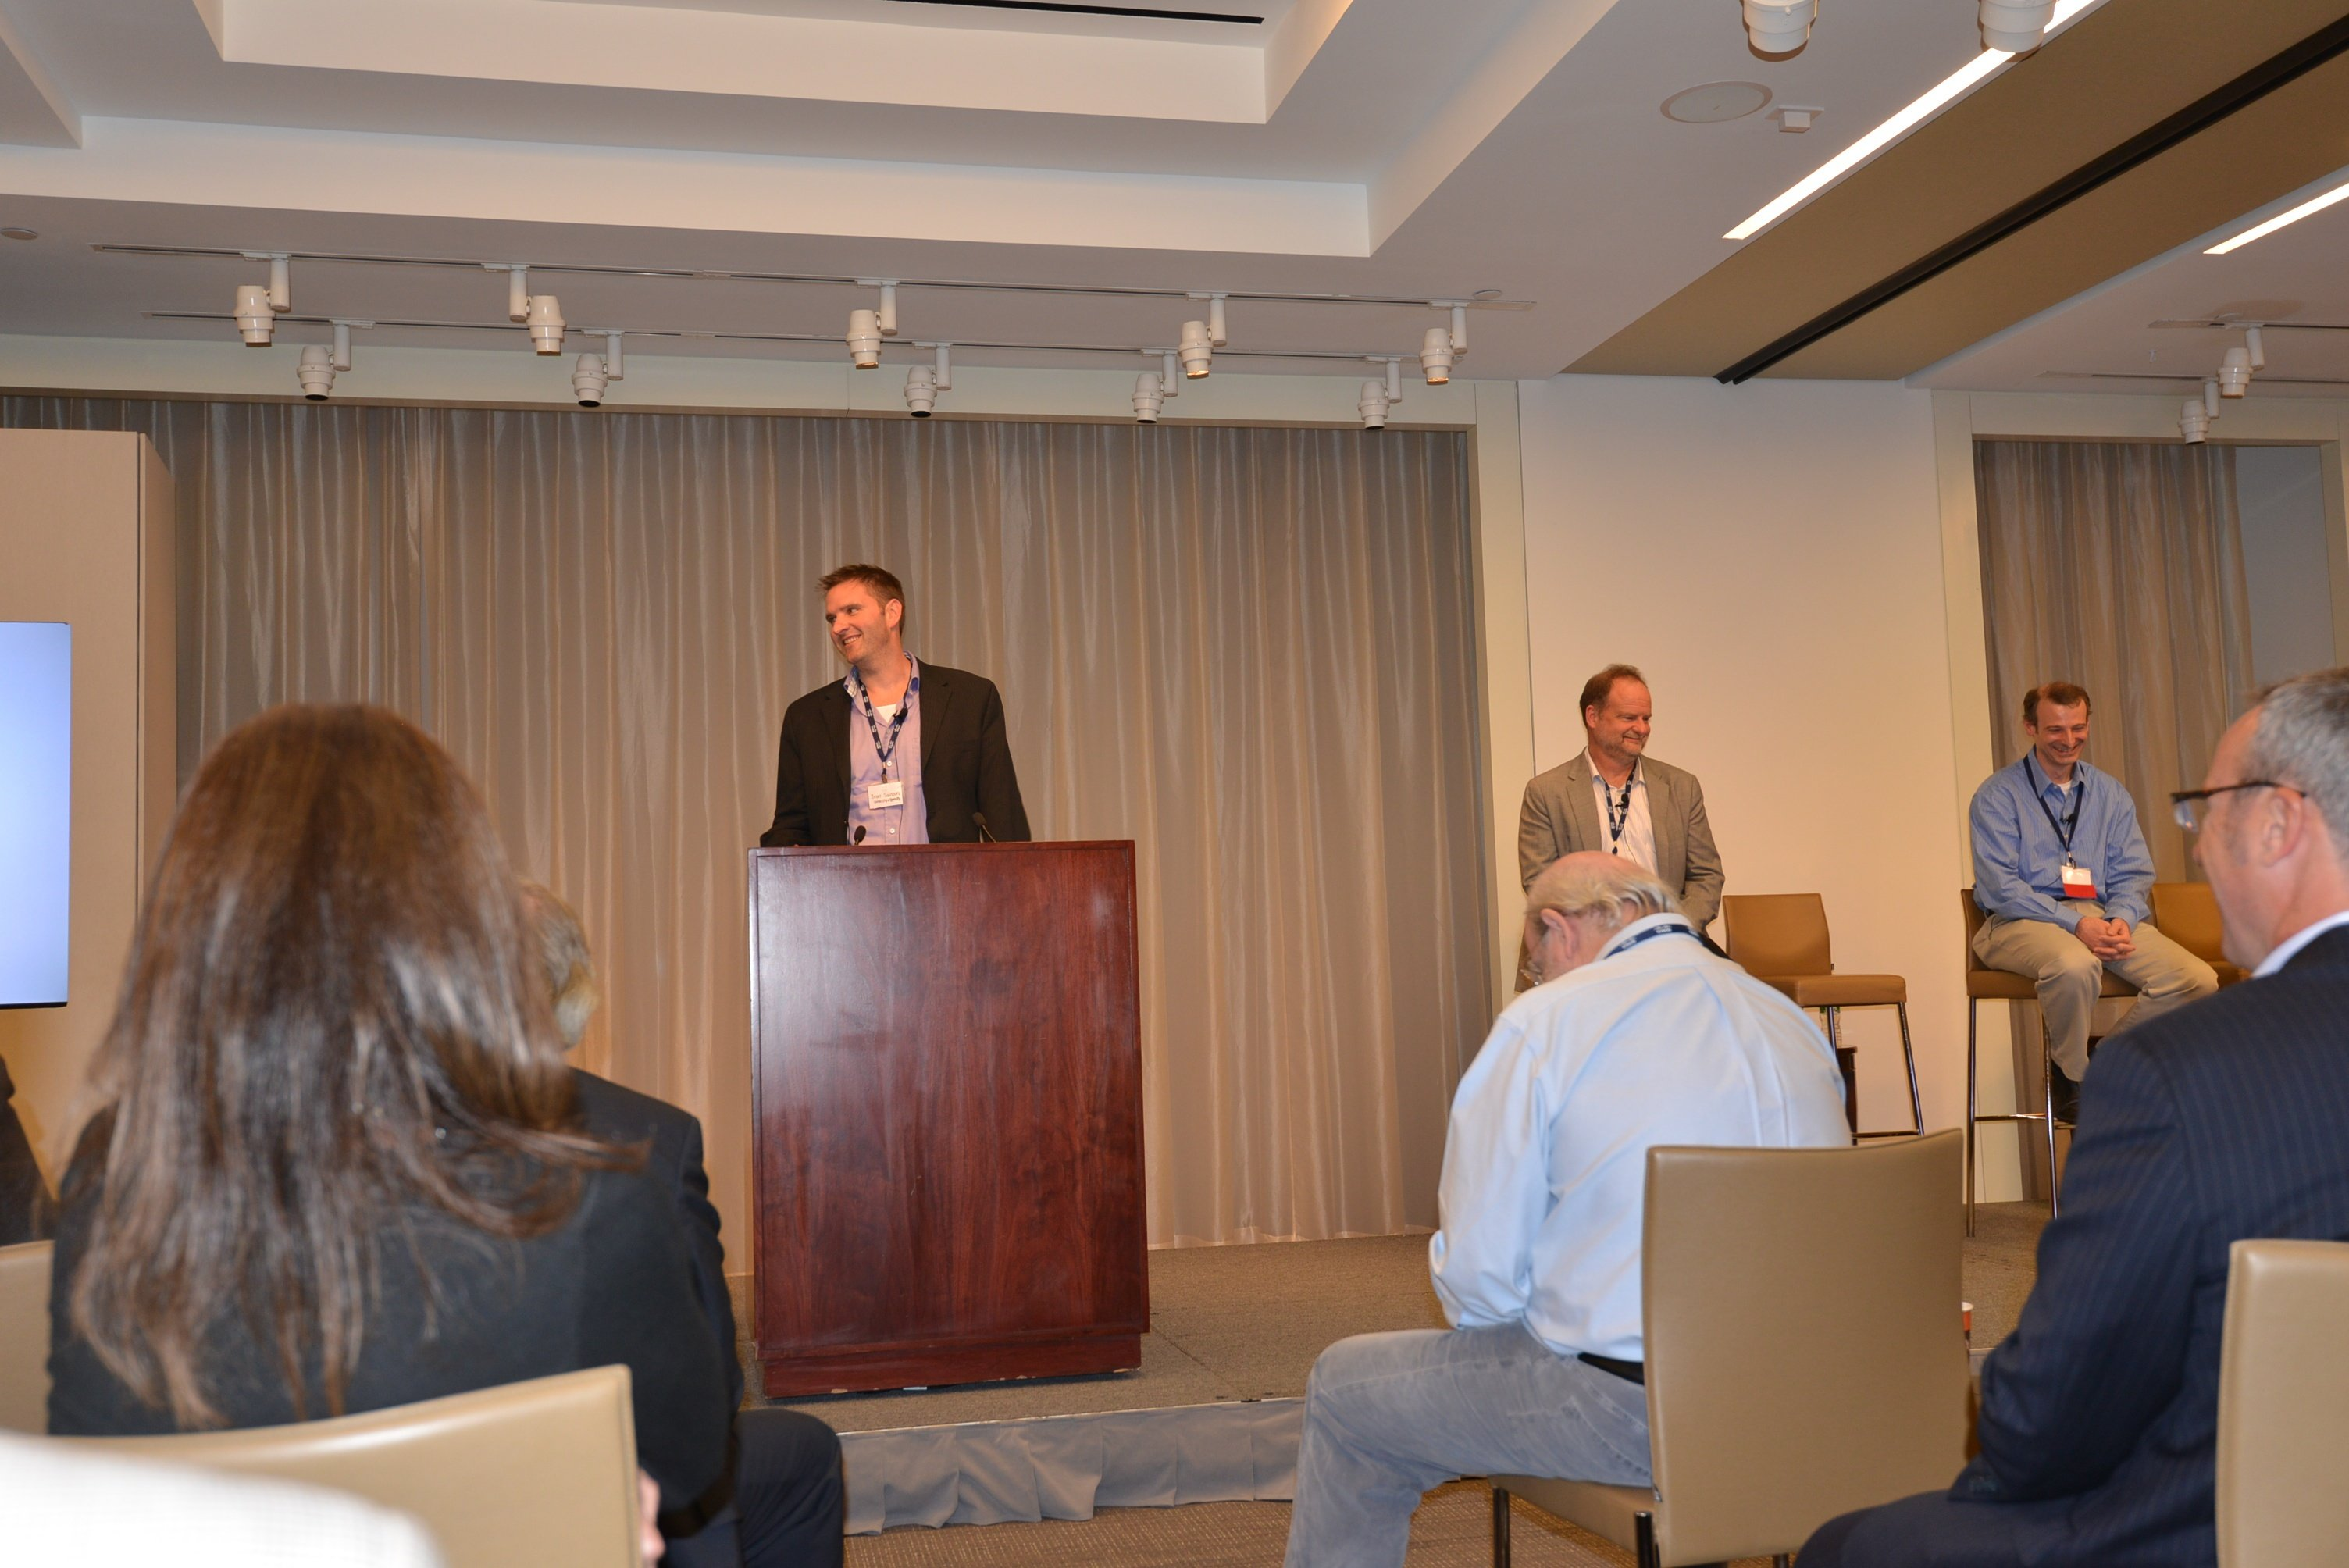 Brent Salisbury addresses the crowd during the SDN in University Environments session as fellow panelists Steve Wallace and Jim Kyriannis look on